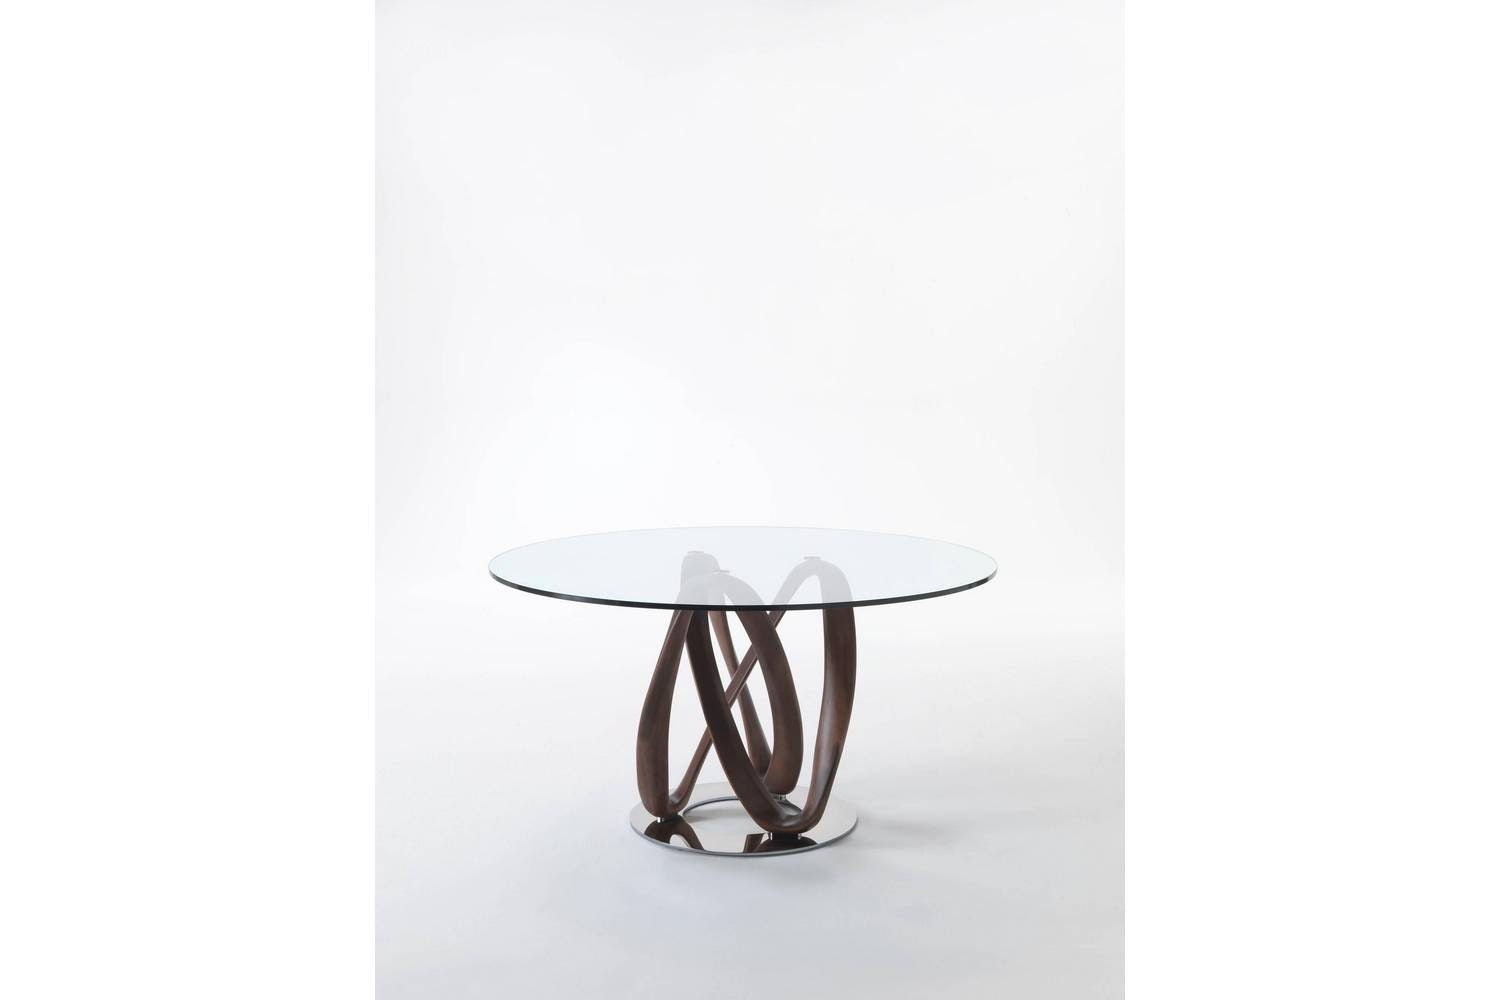 Infinity Table by S. Bigi for Porada